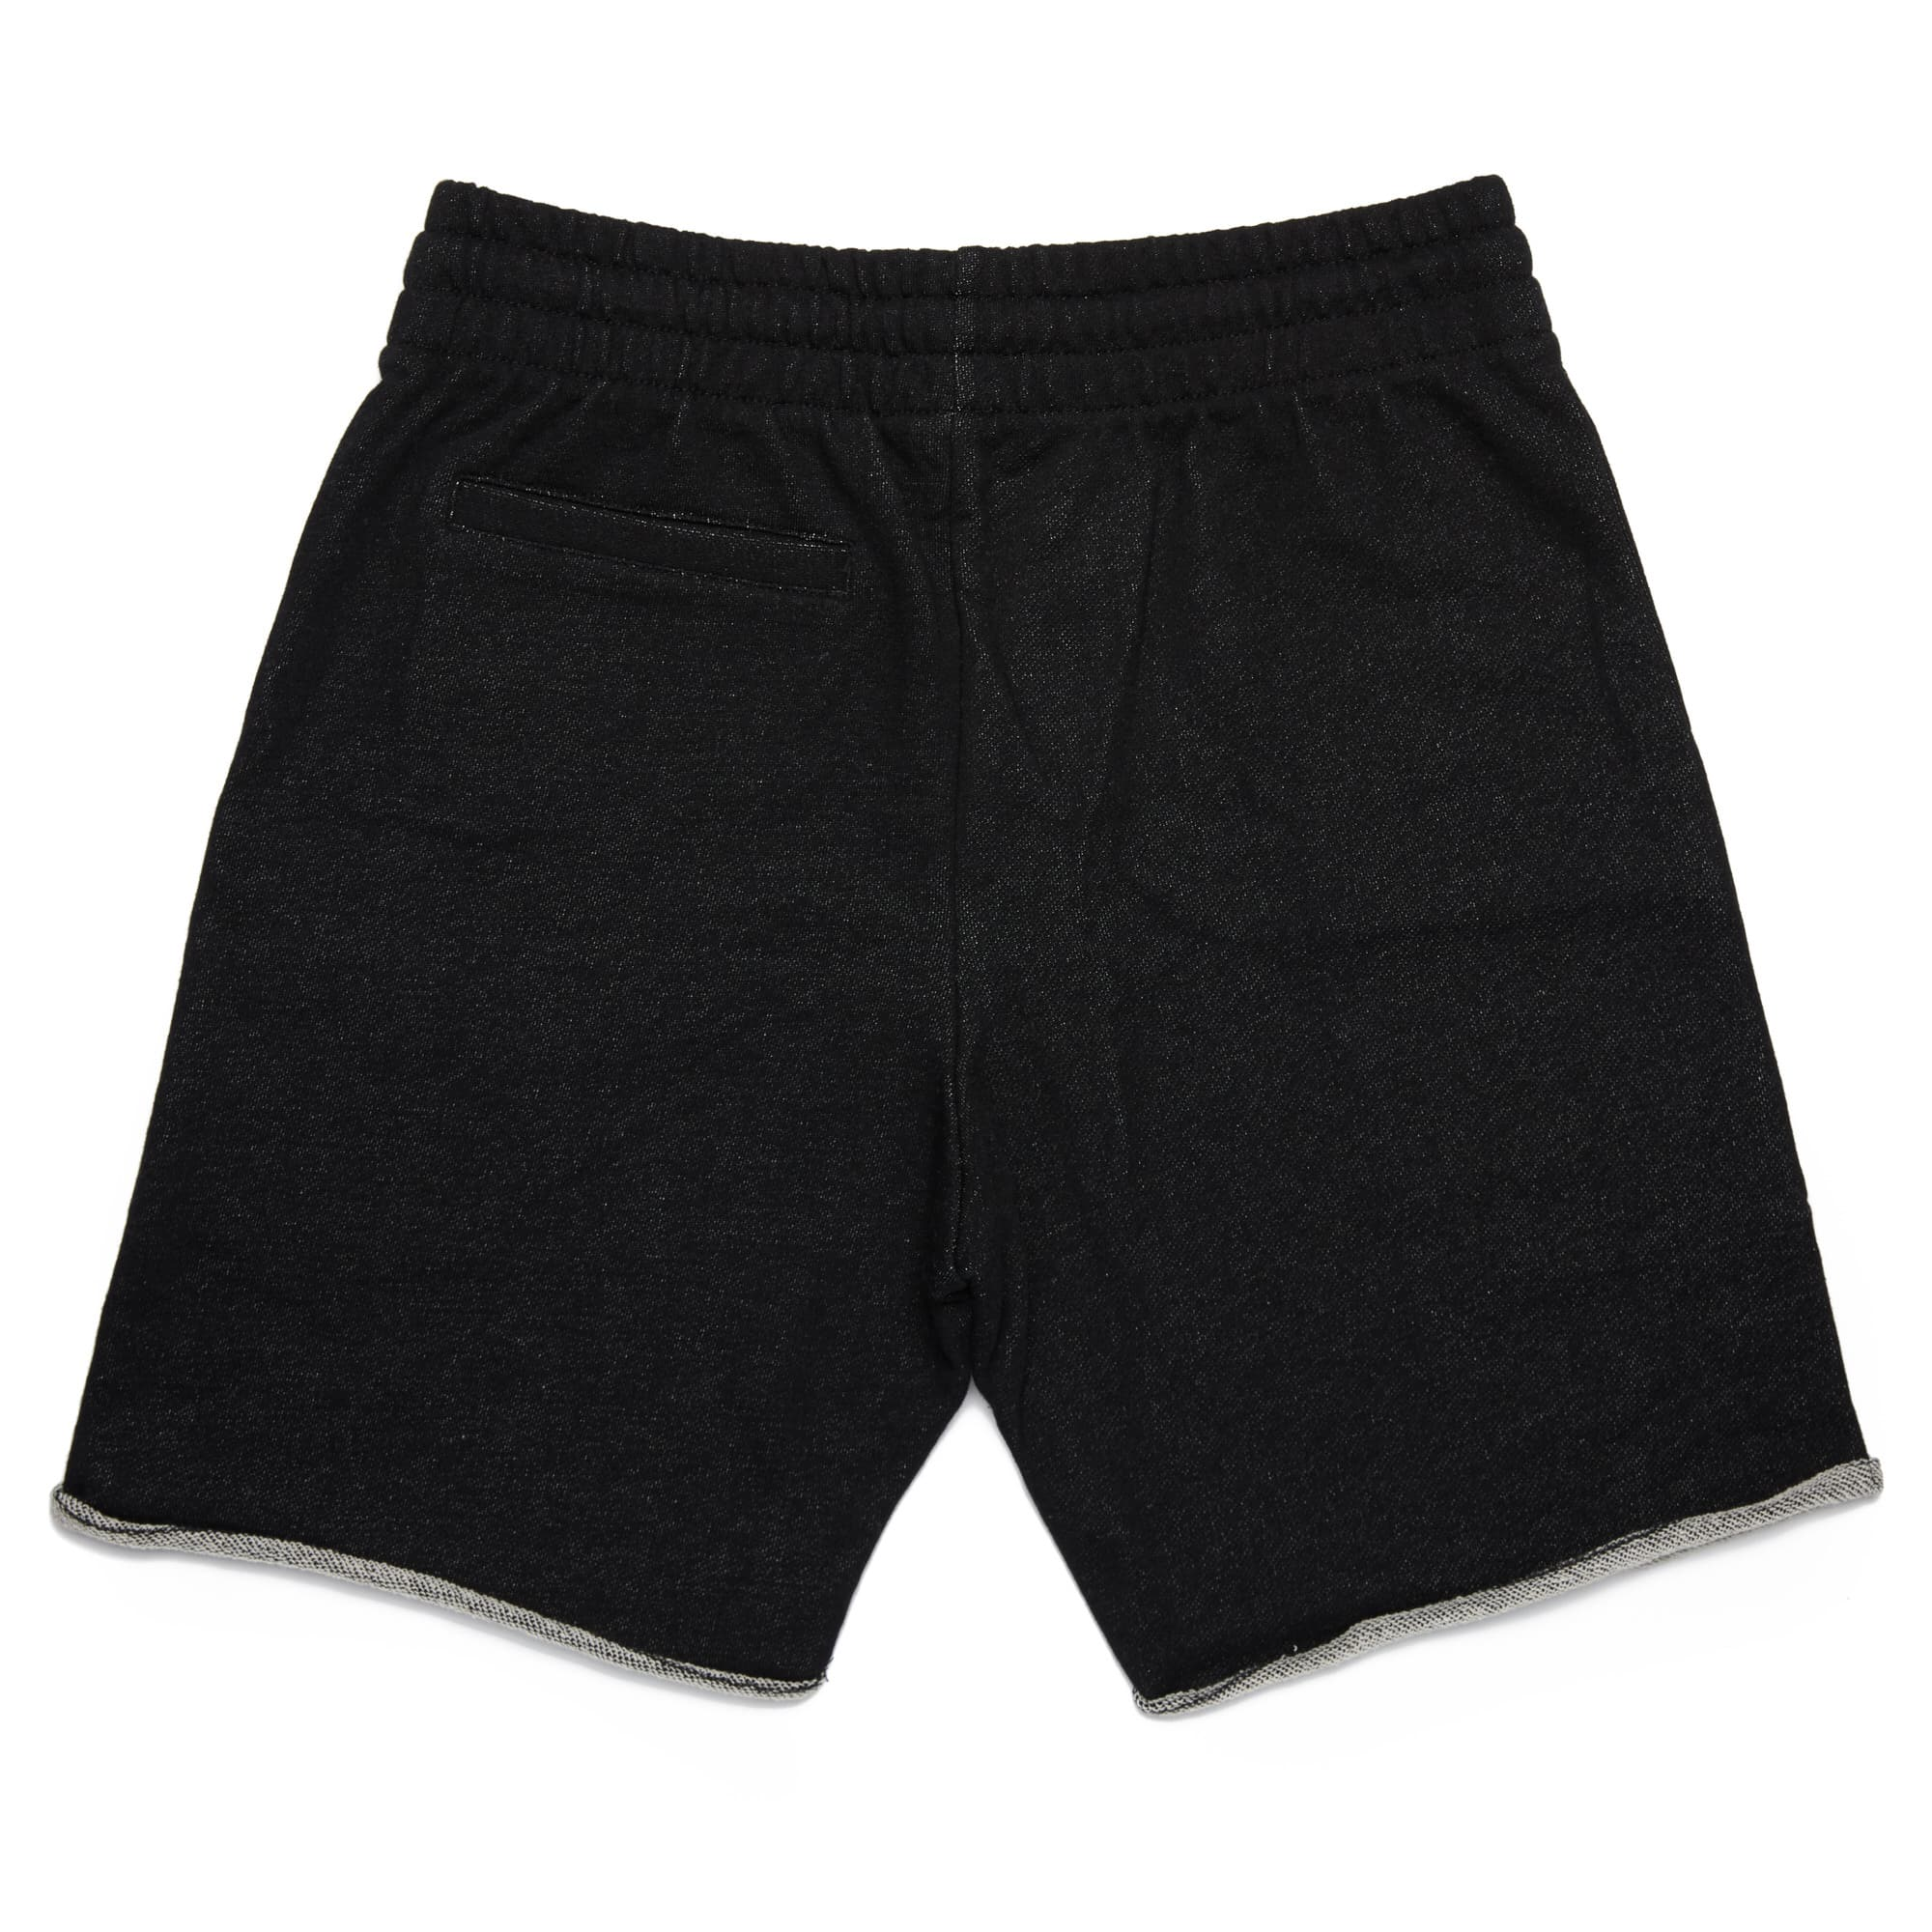 'Redemption' French Terry Shorts